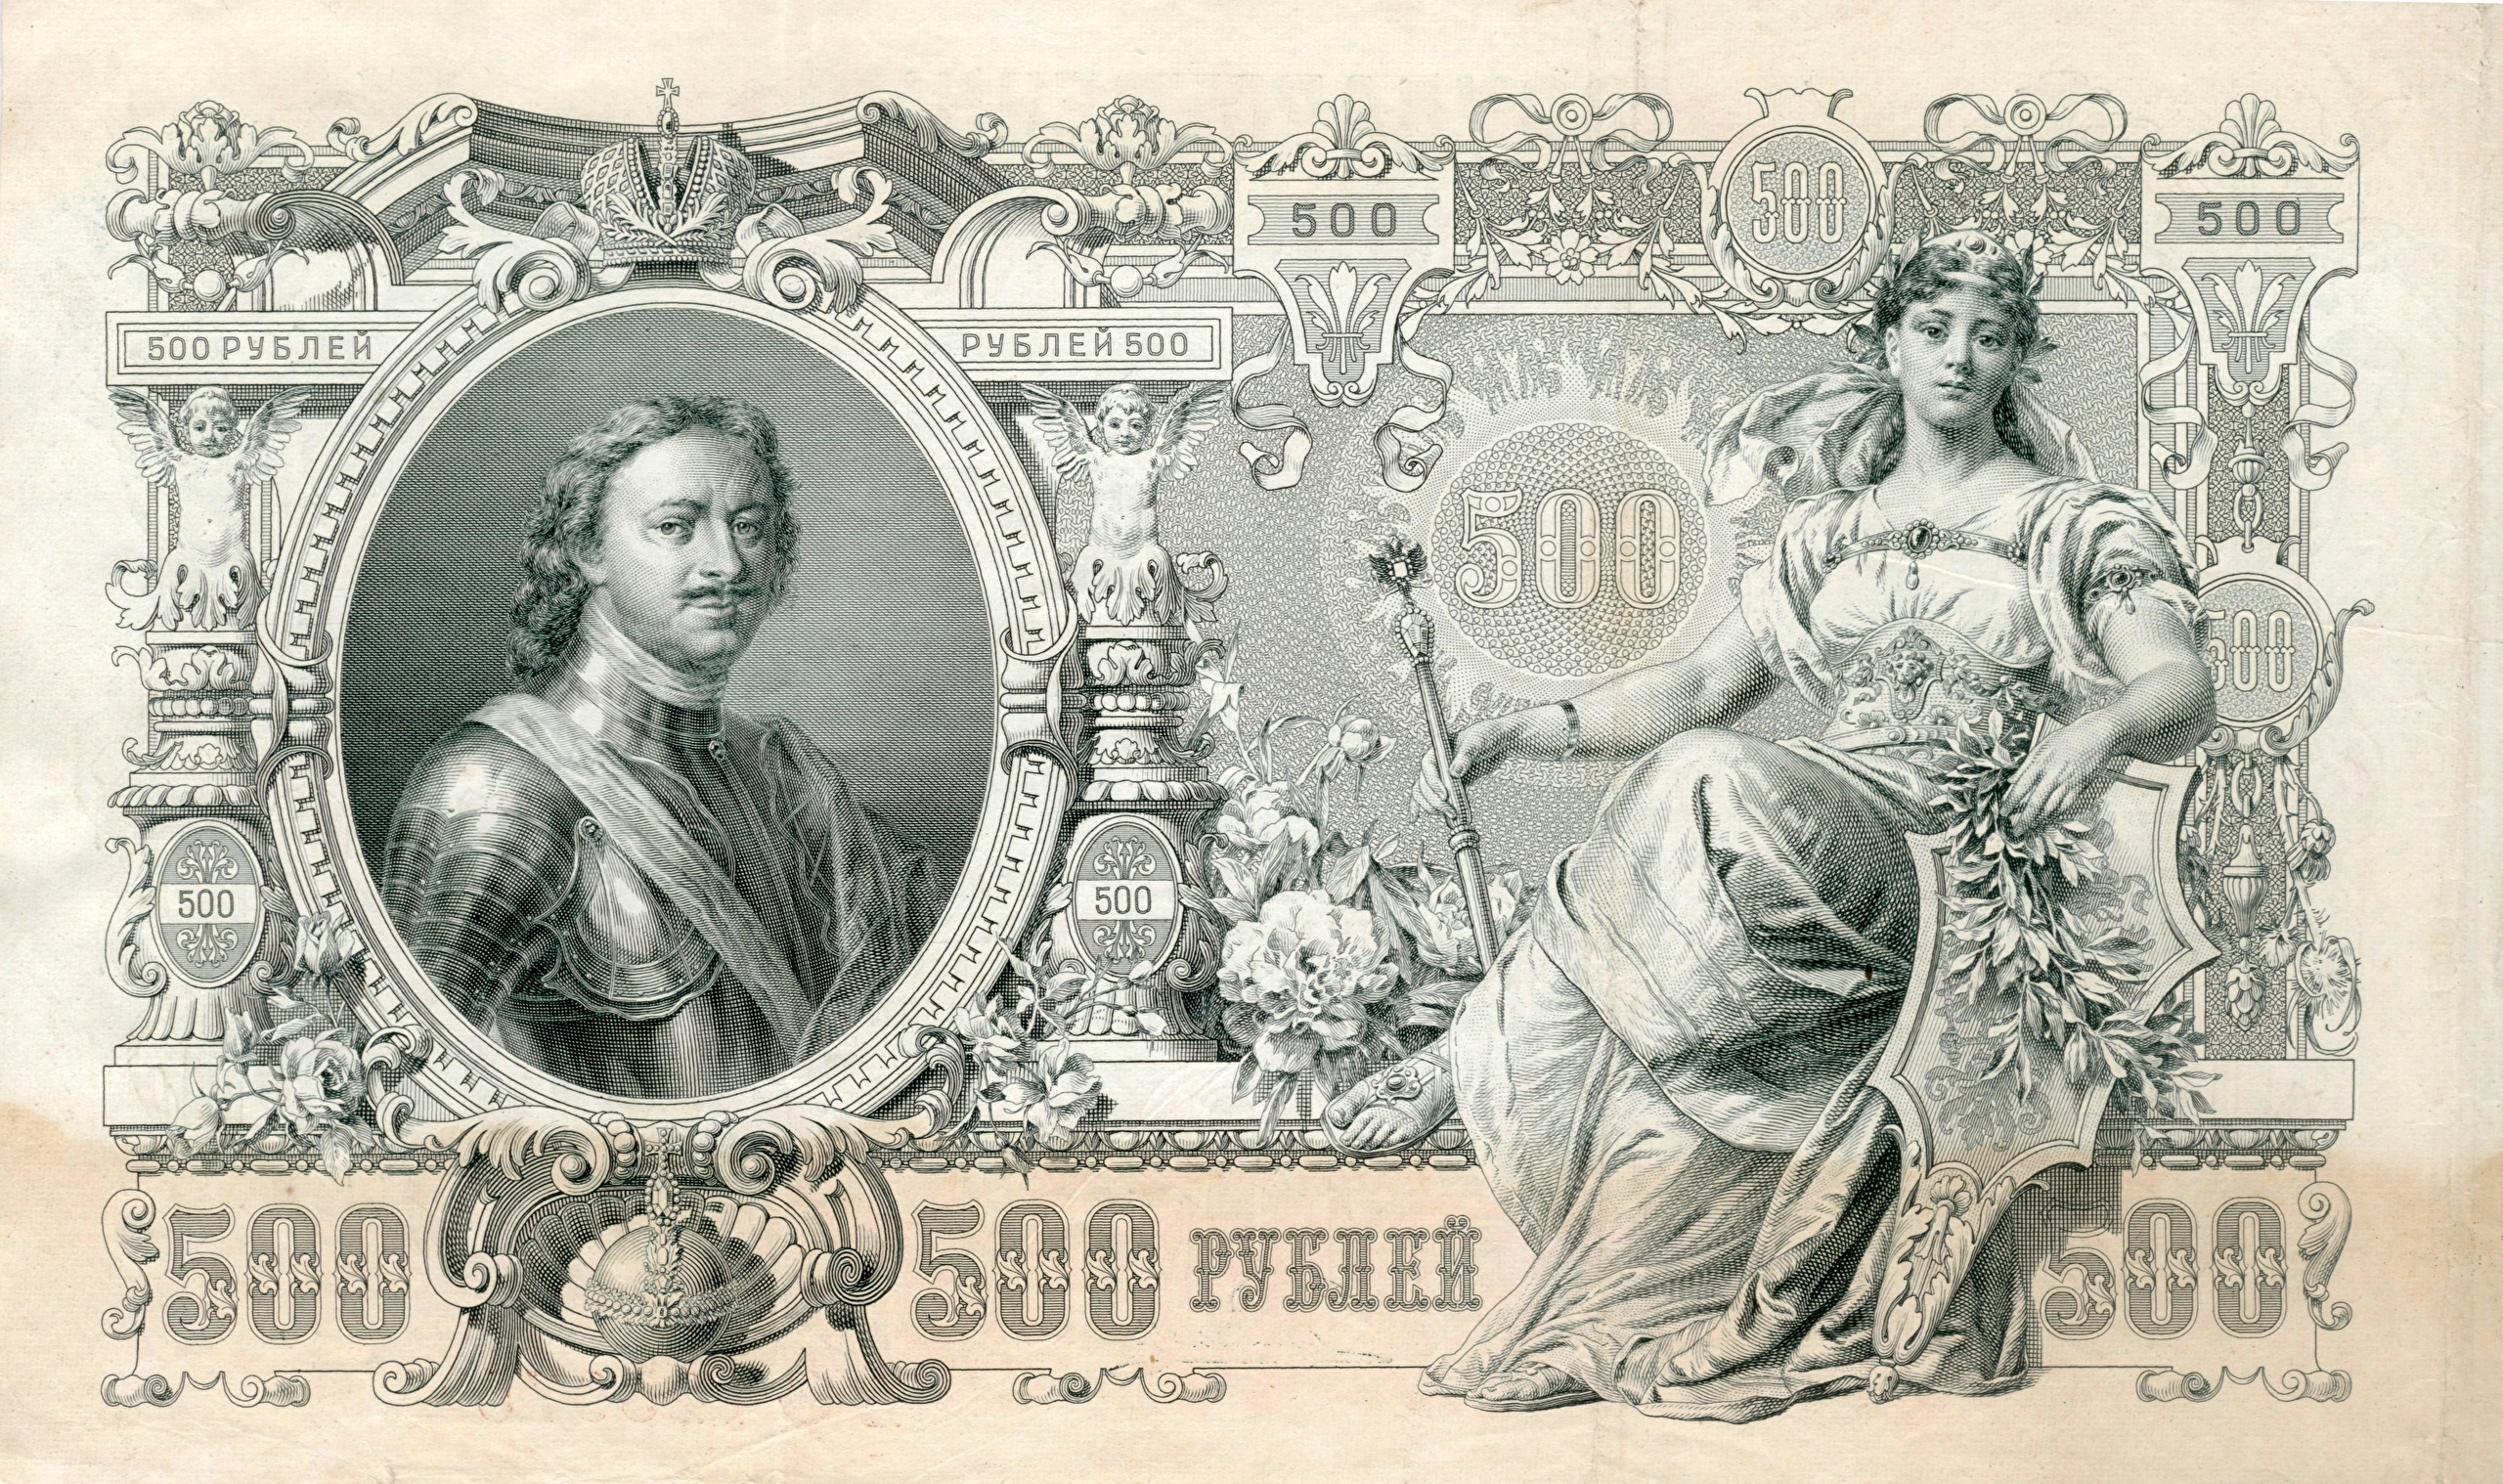 Peter the Great portrayed on 500 ruble Russian Empire banknote